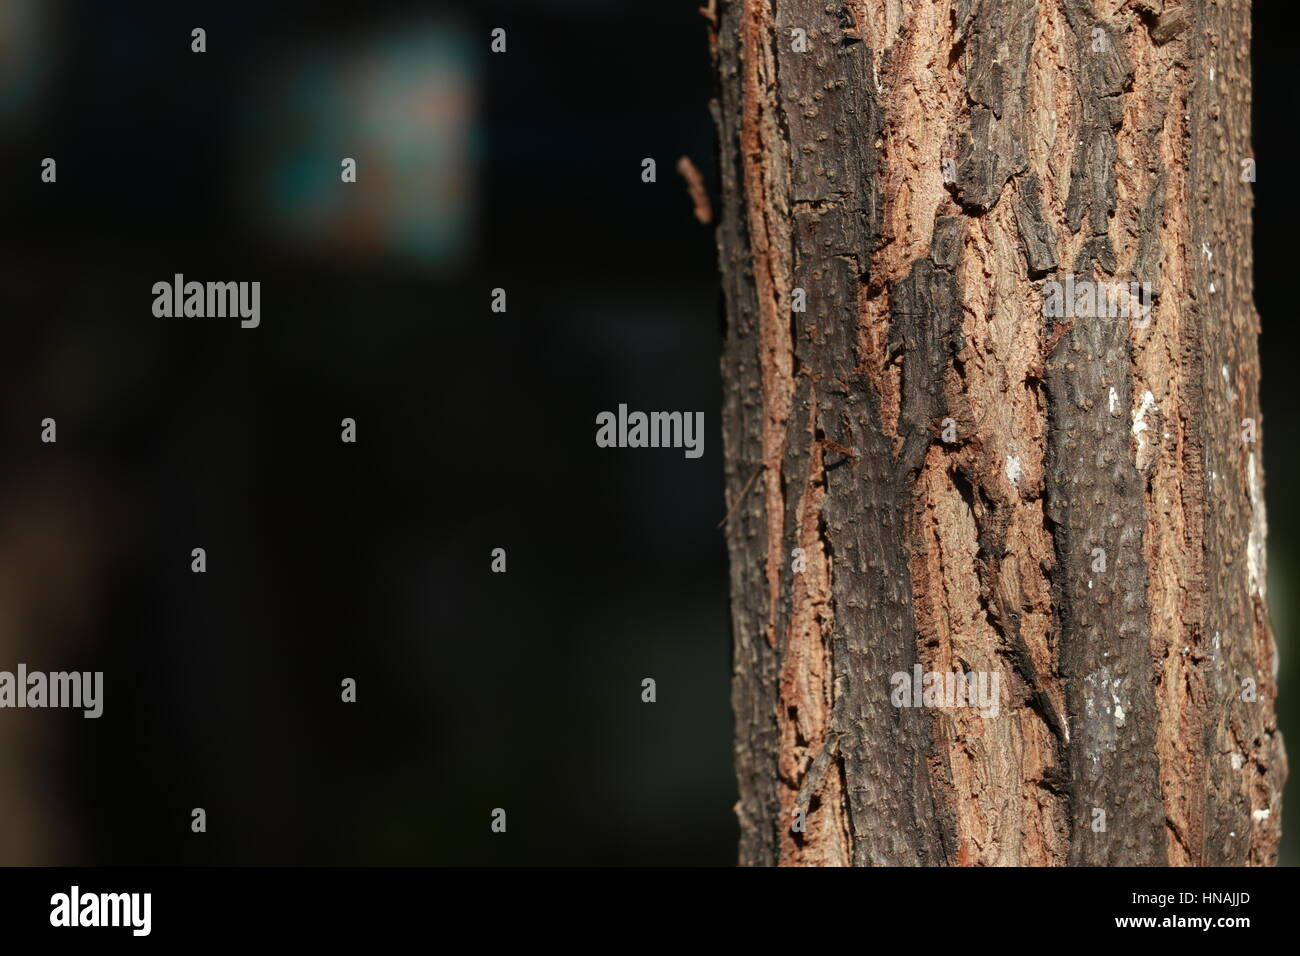 Tree and Stems Focused - Stock Image